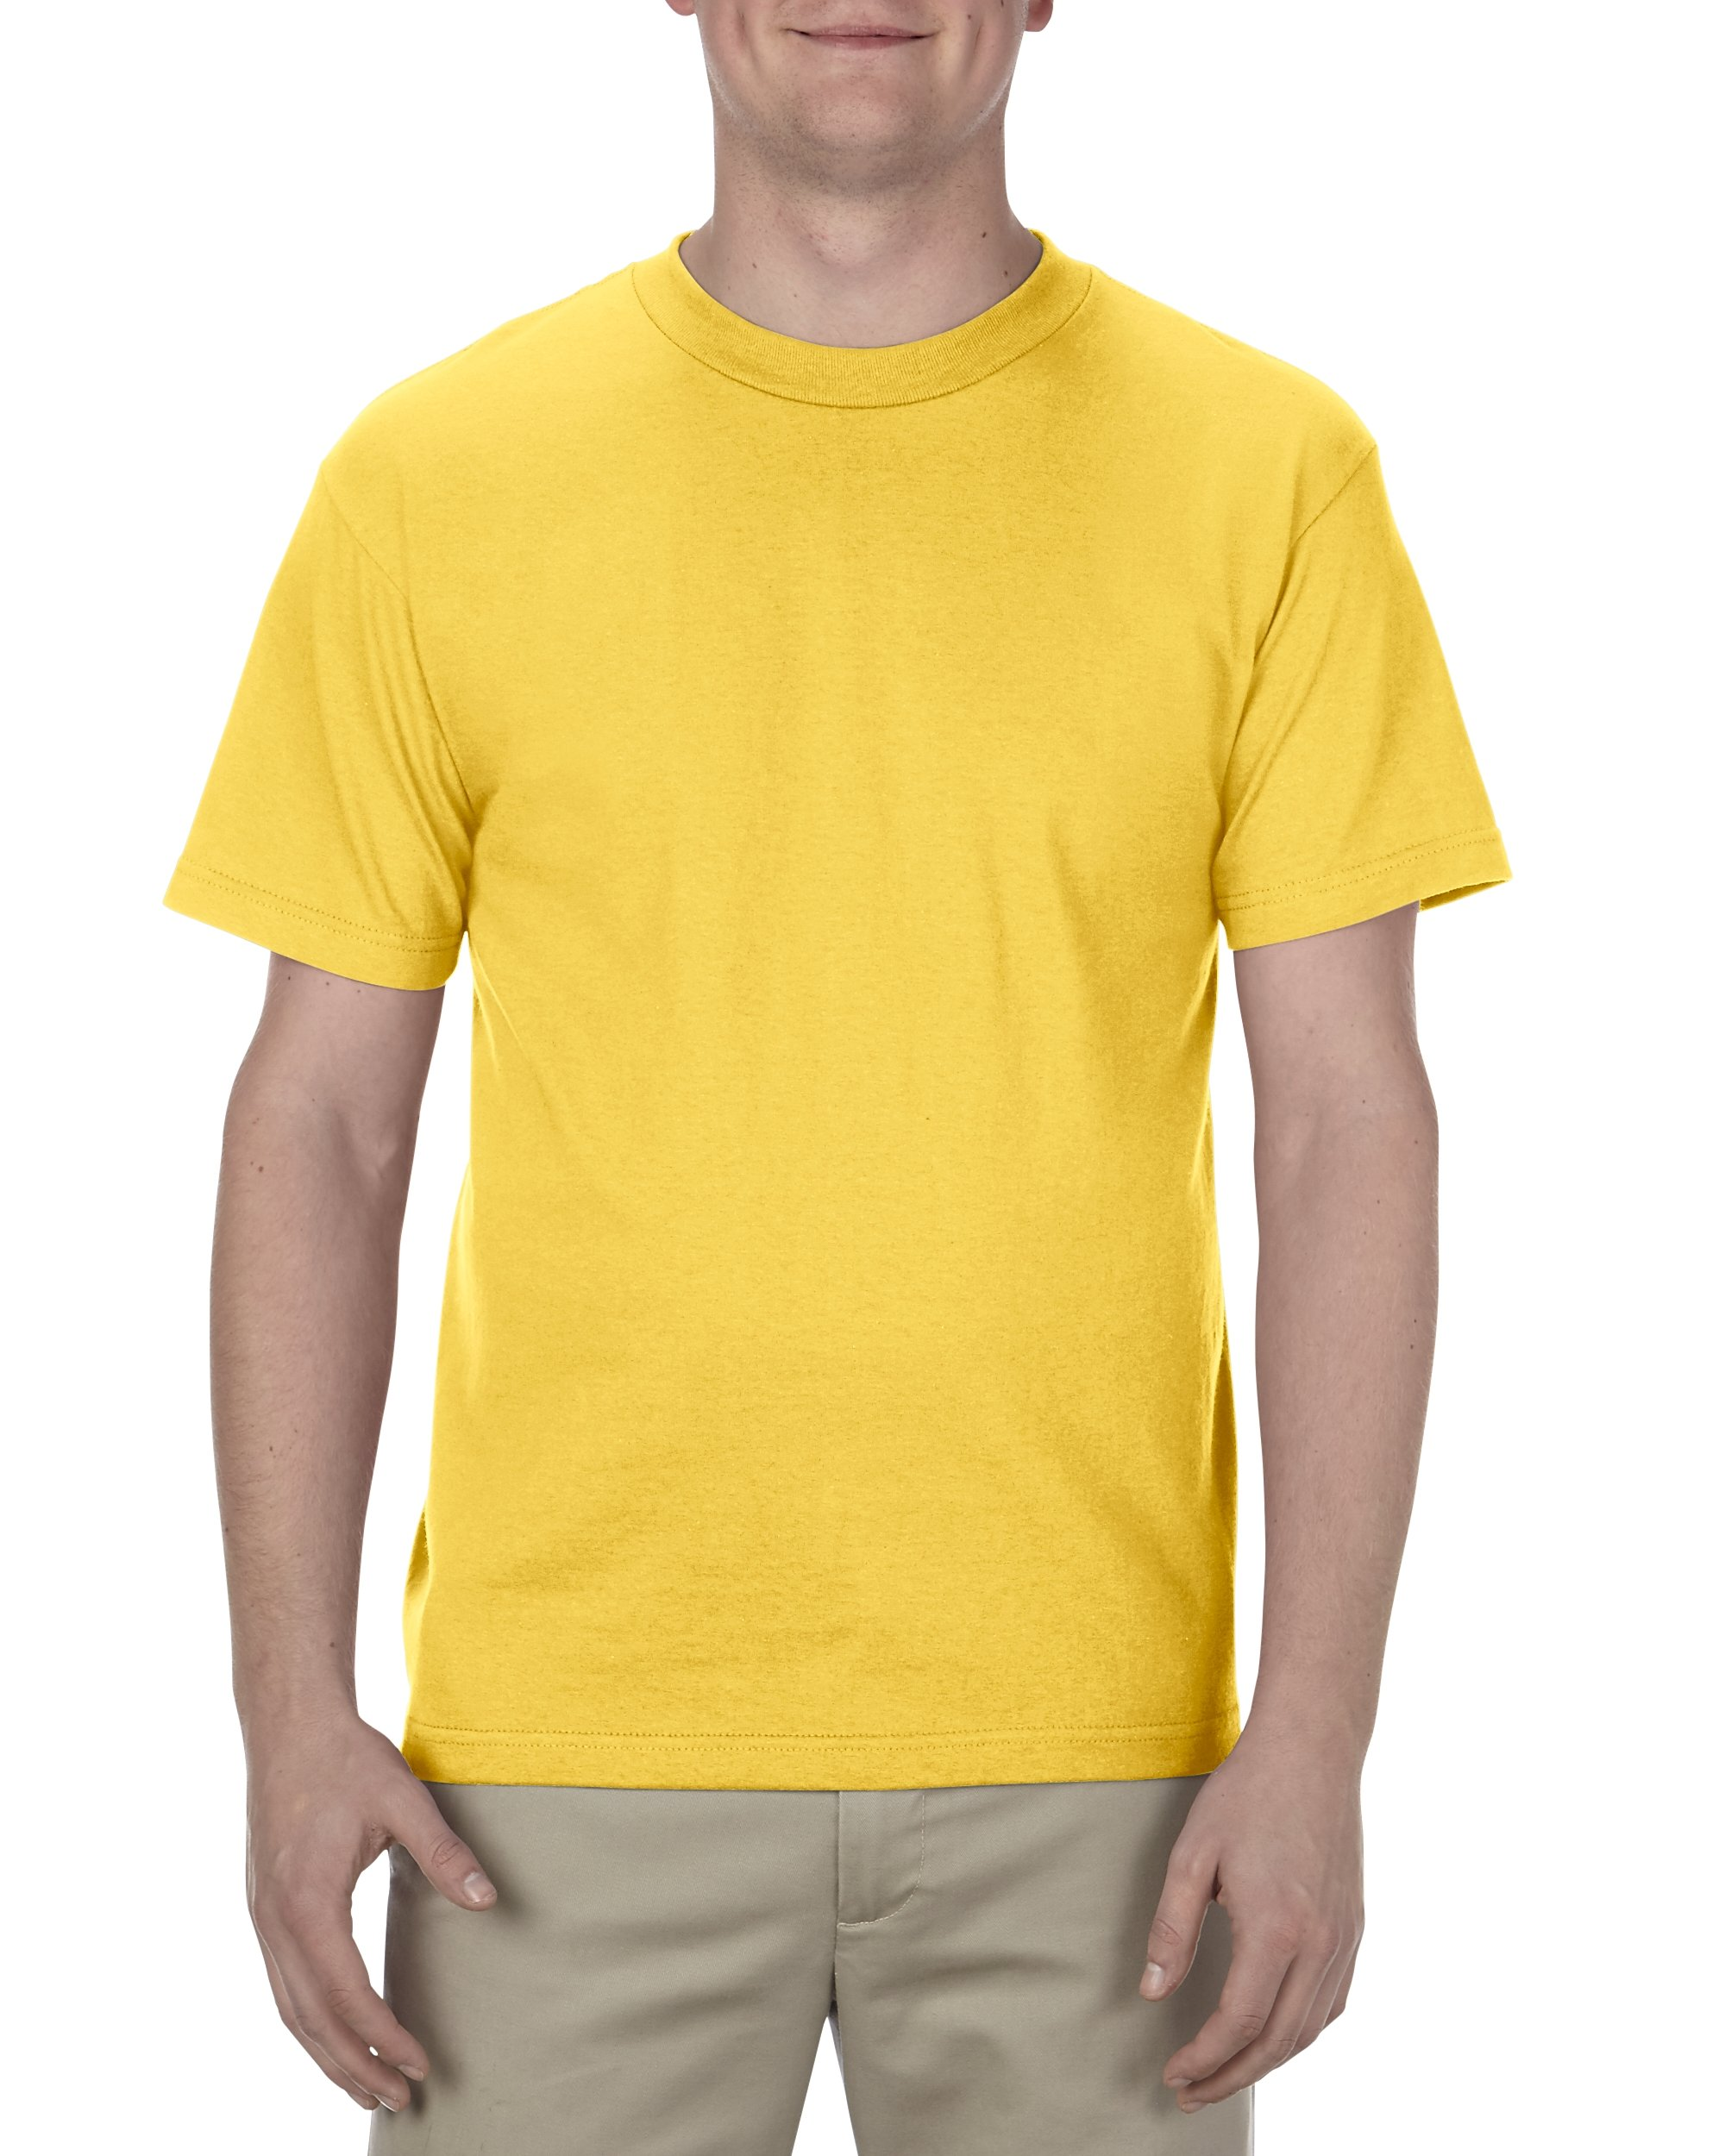 Alstyle Apparel AAA Men's Classic Cotton Short Sleeve T-shirt, Yellow, Large